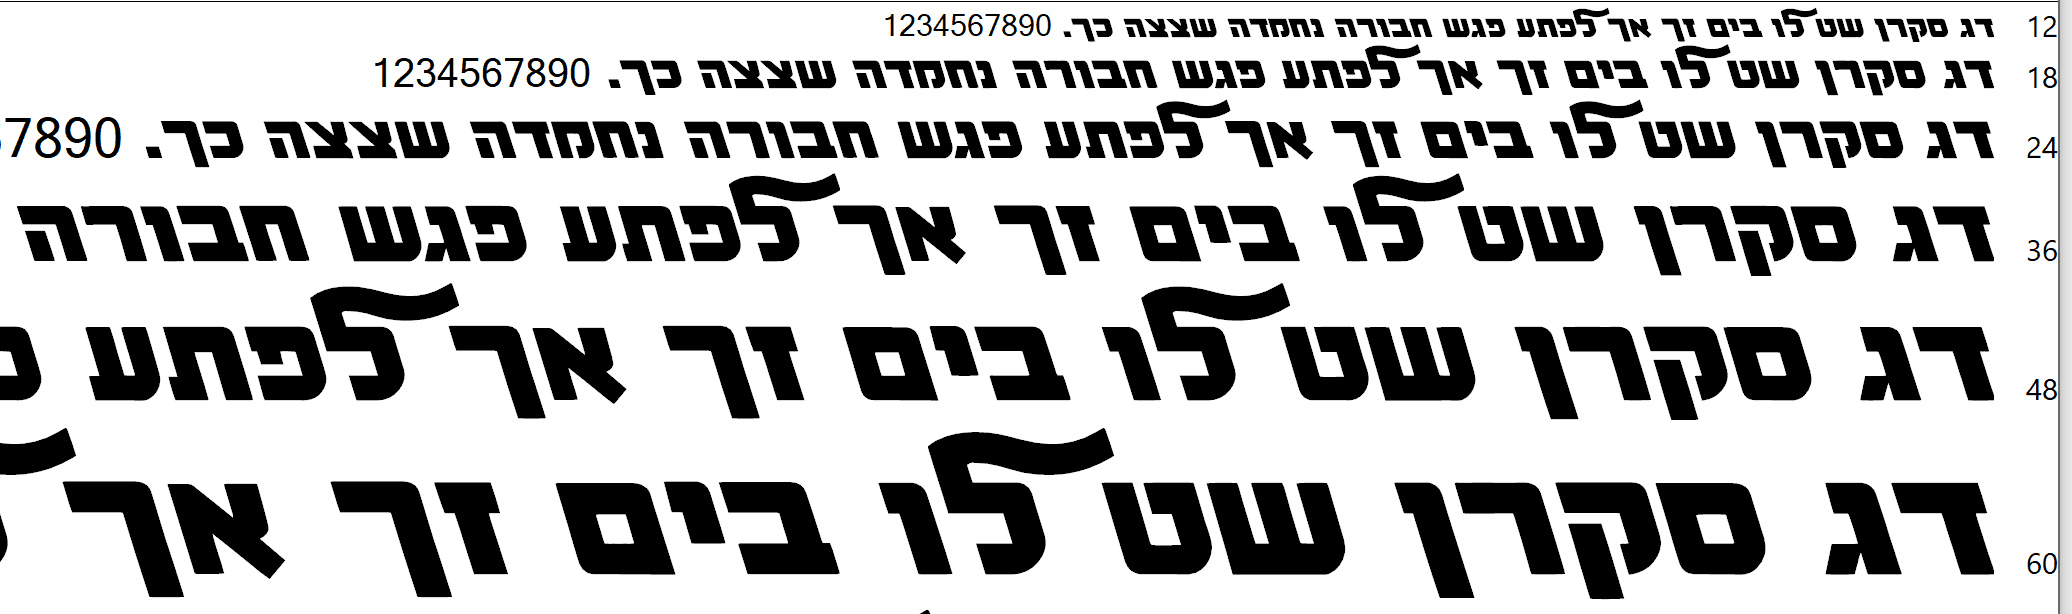 1602100818439.png